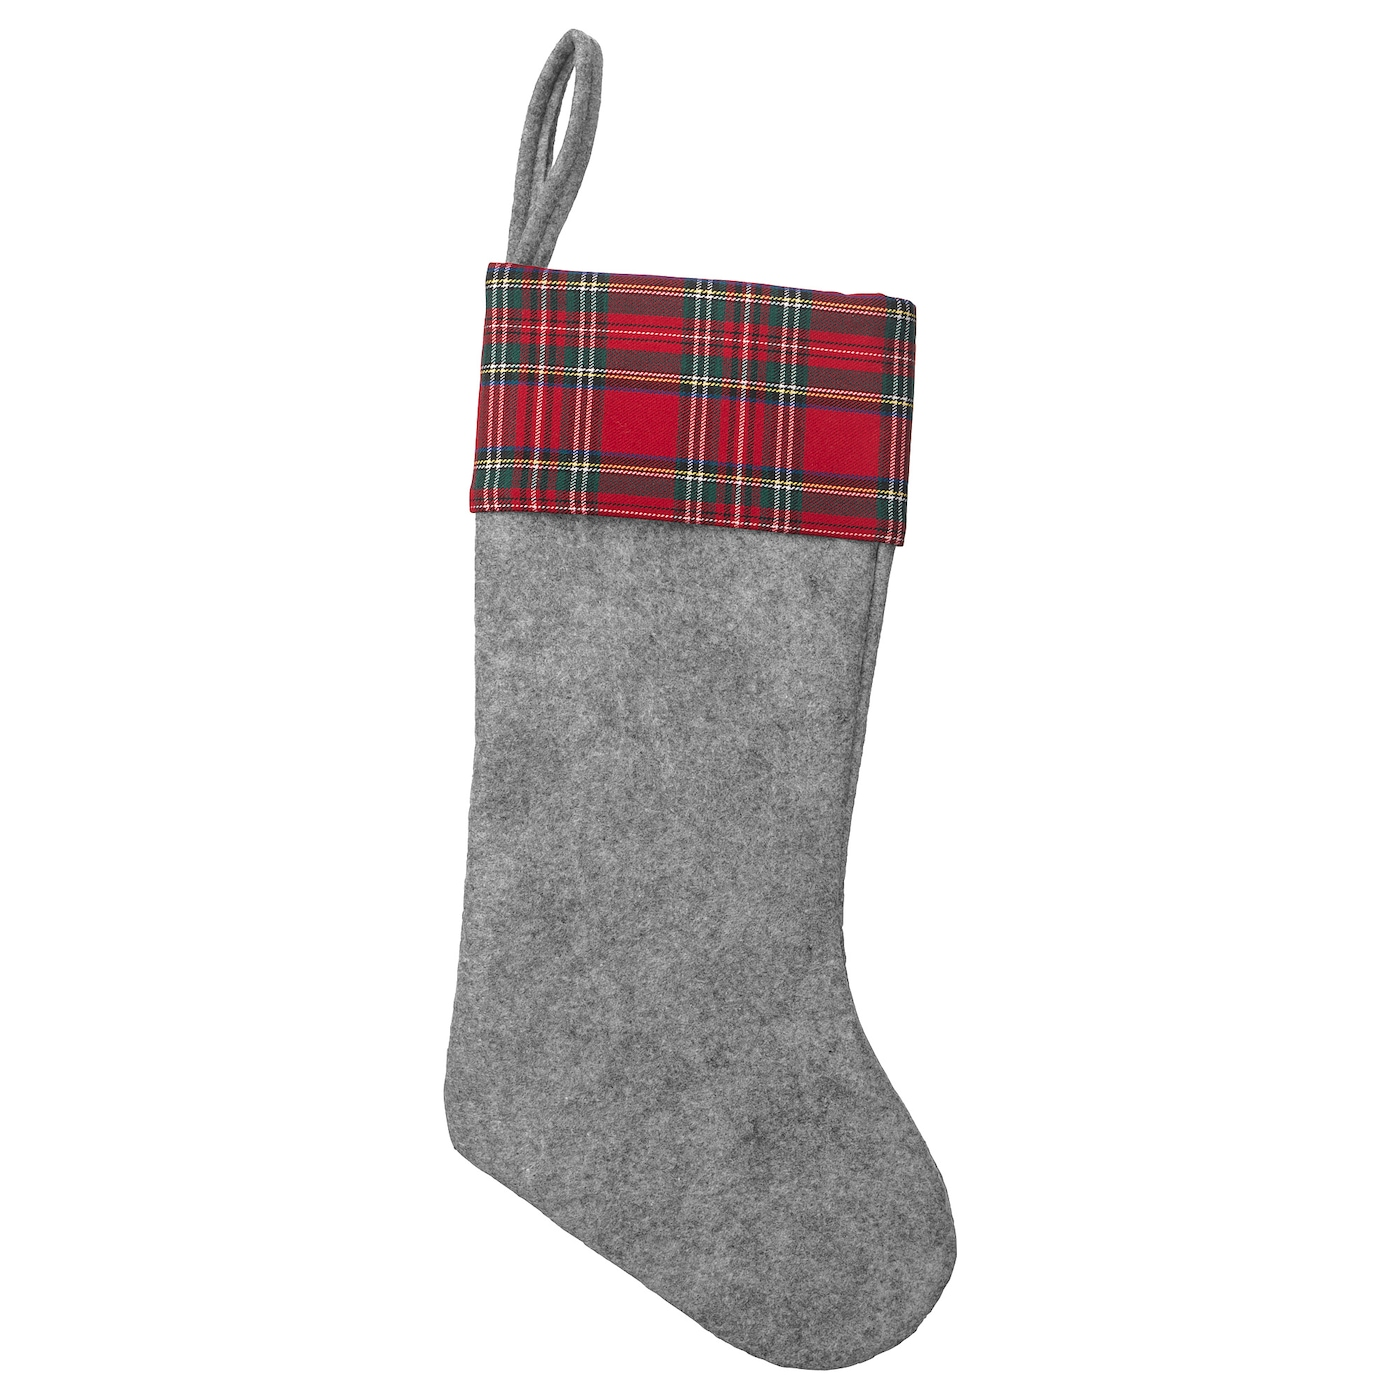 VINTER 2018 Christmas stocking Grey 47 cm - IKEA